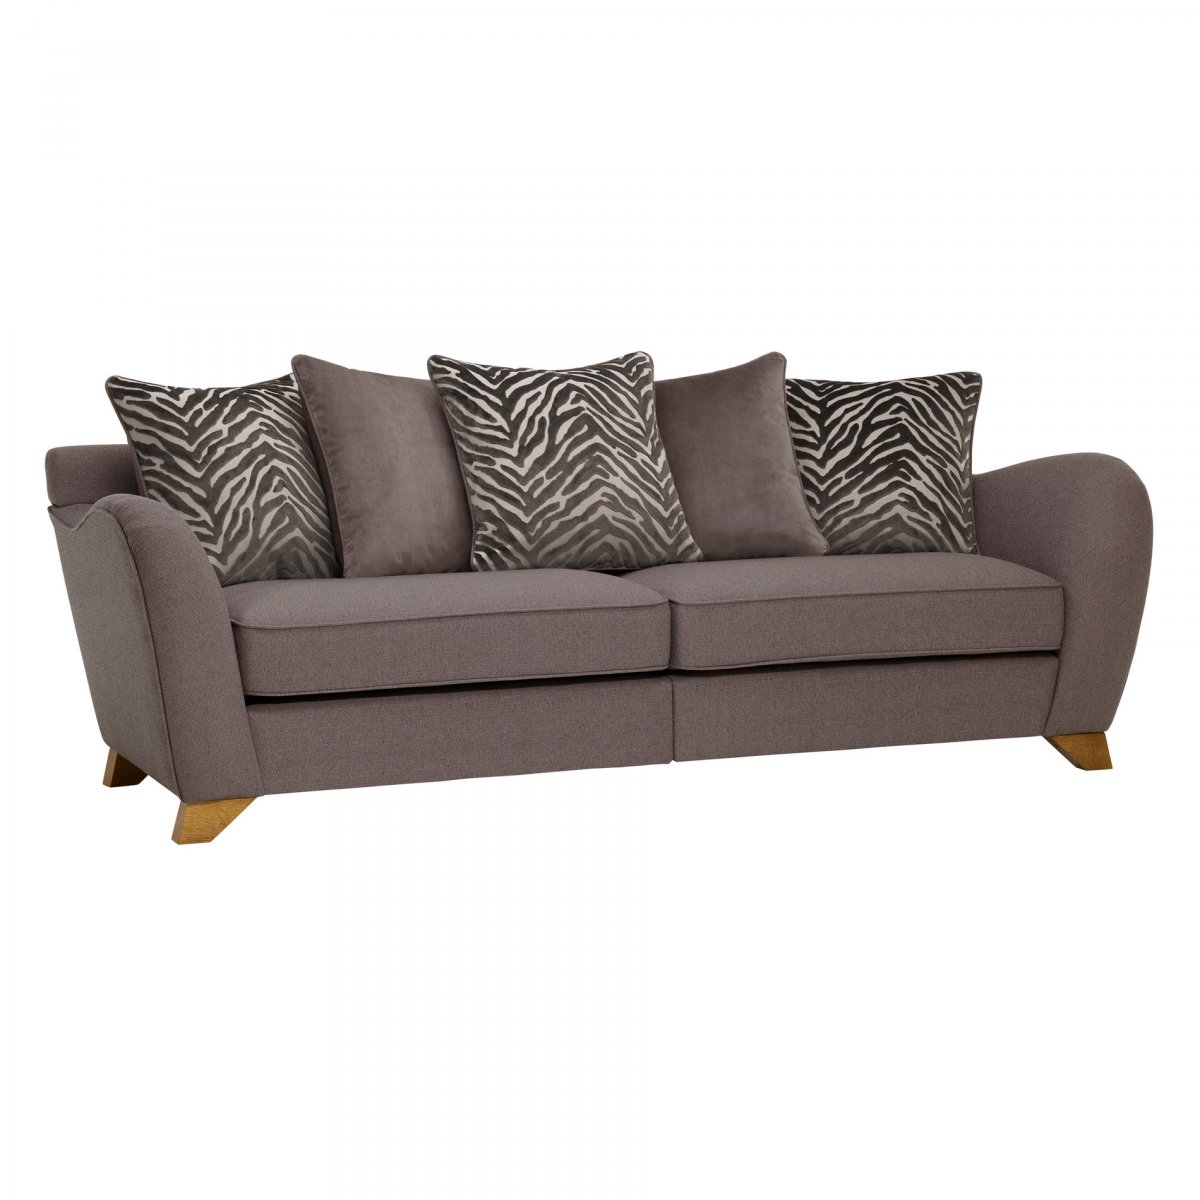 Abbey Traditional Large Sofa, Pillow Back Oak Furniture Land